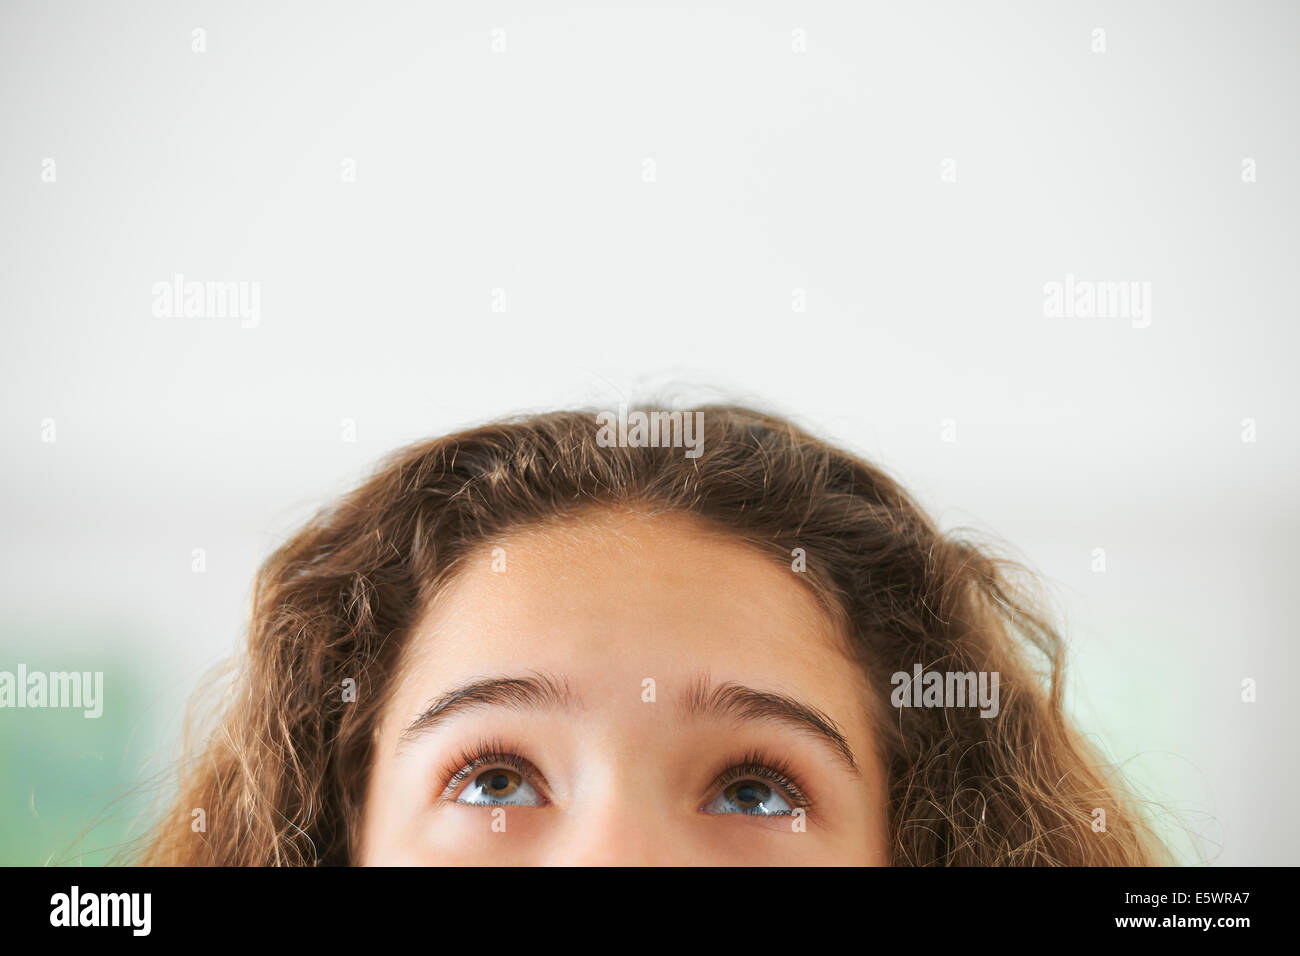 Portrait of young girl, focus on eyes - Stock Image